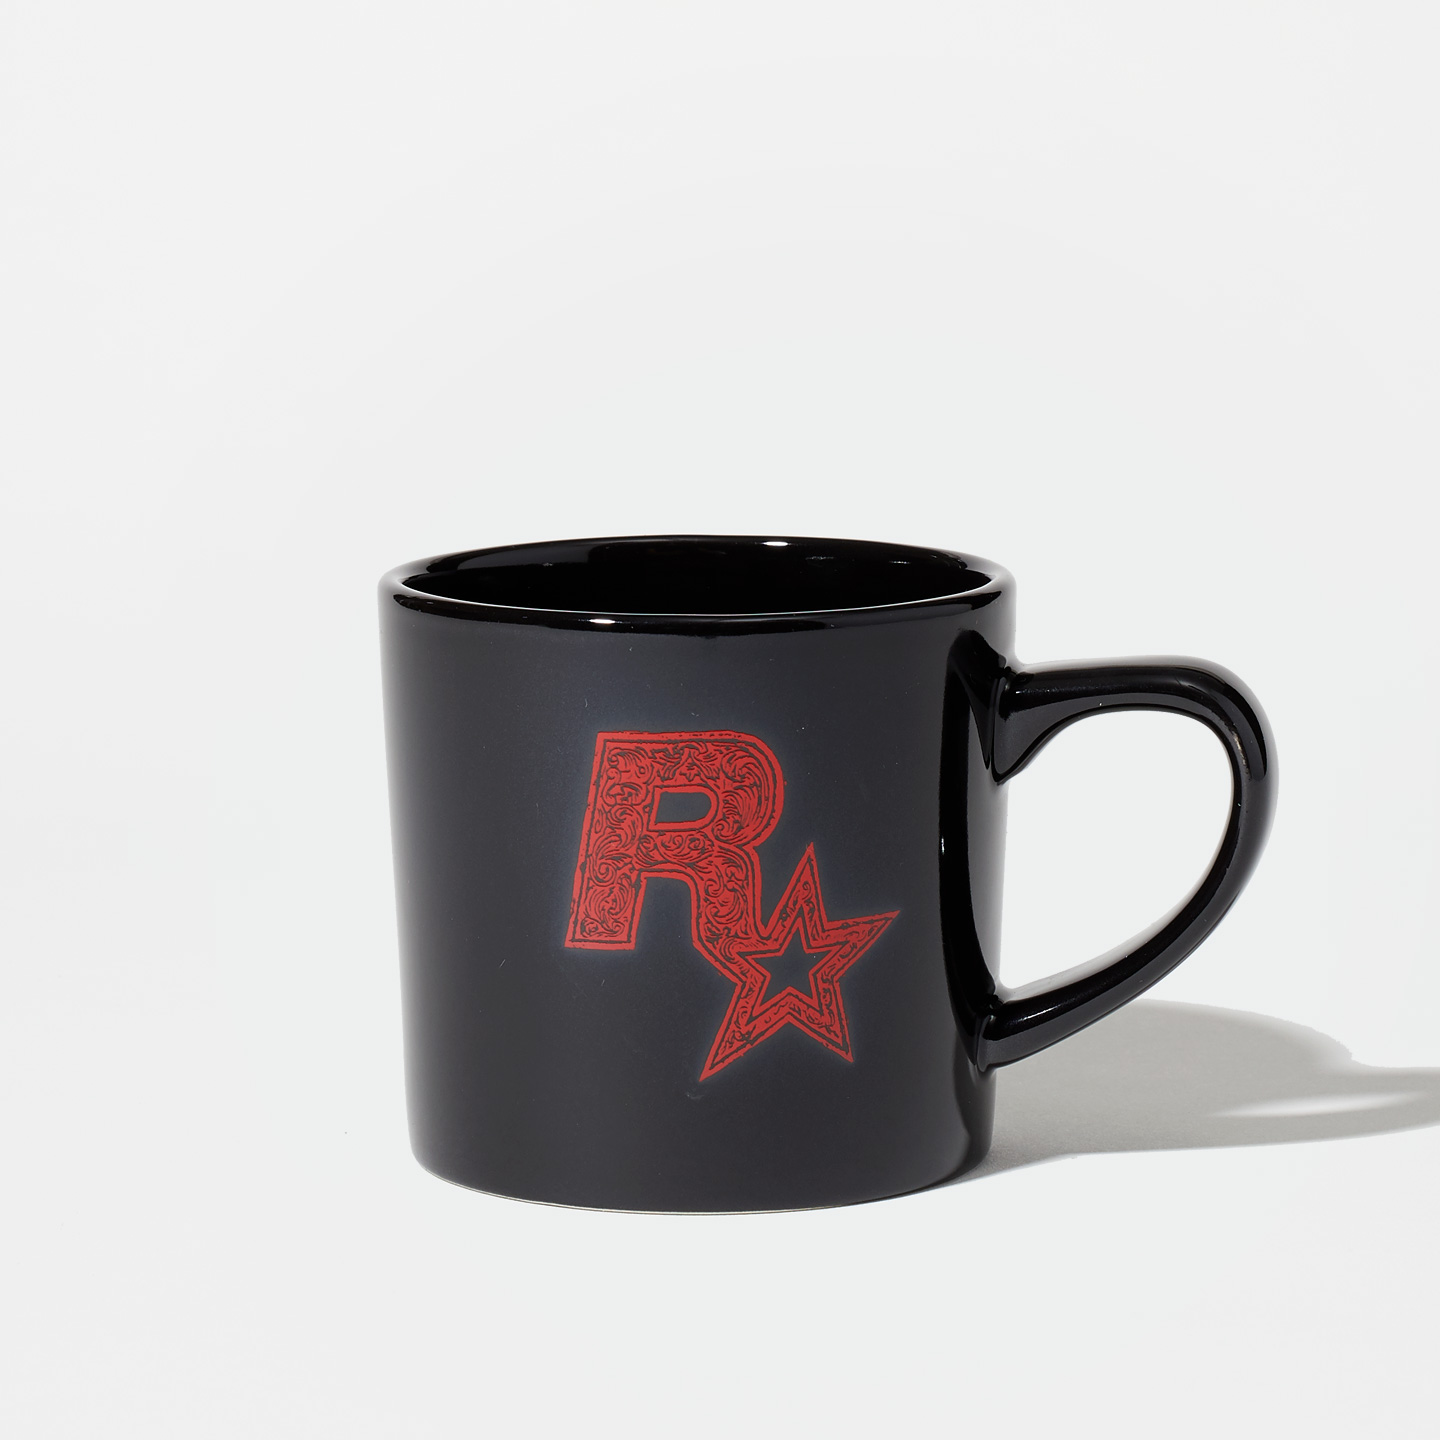 Red Dead Redemption 2 Black Ceramic Mug